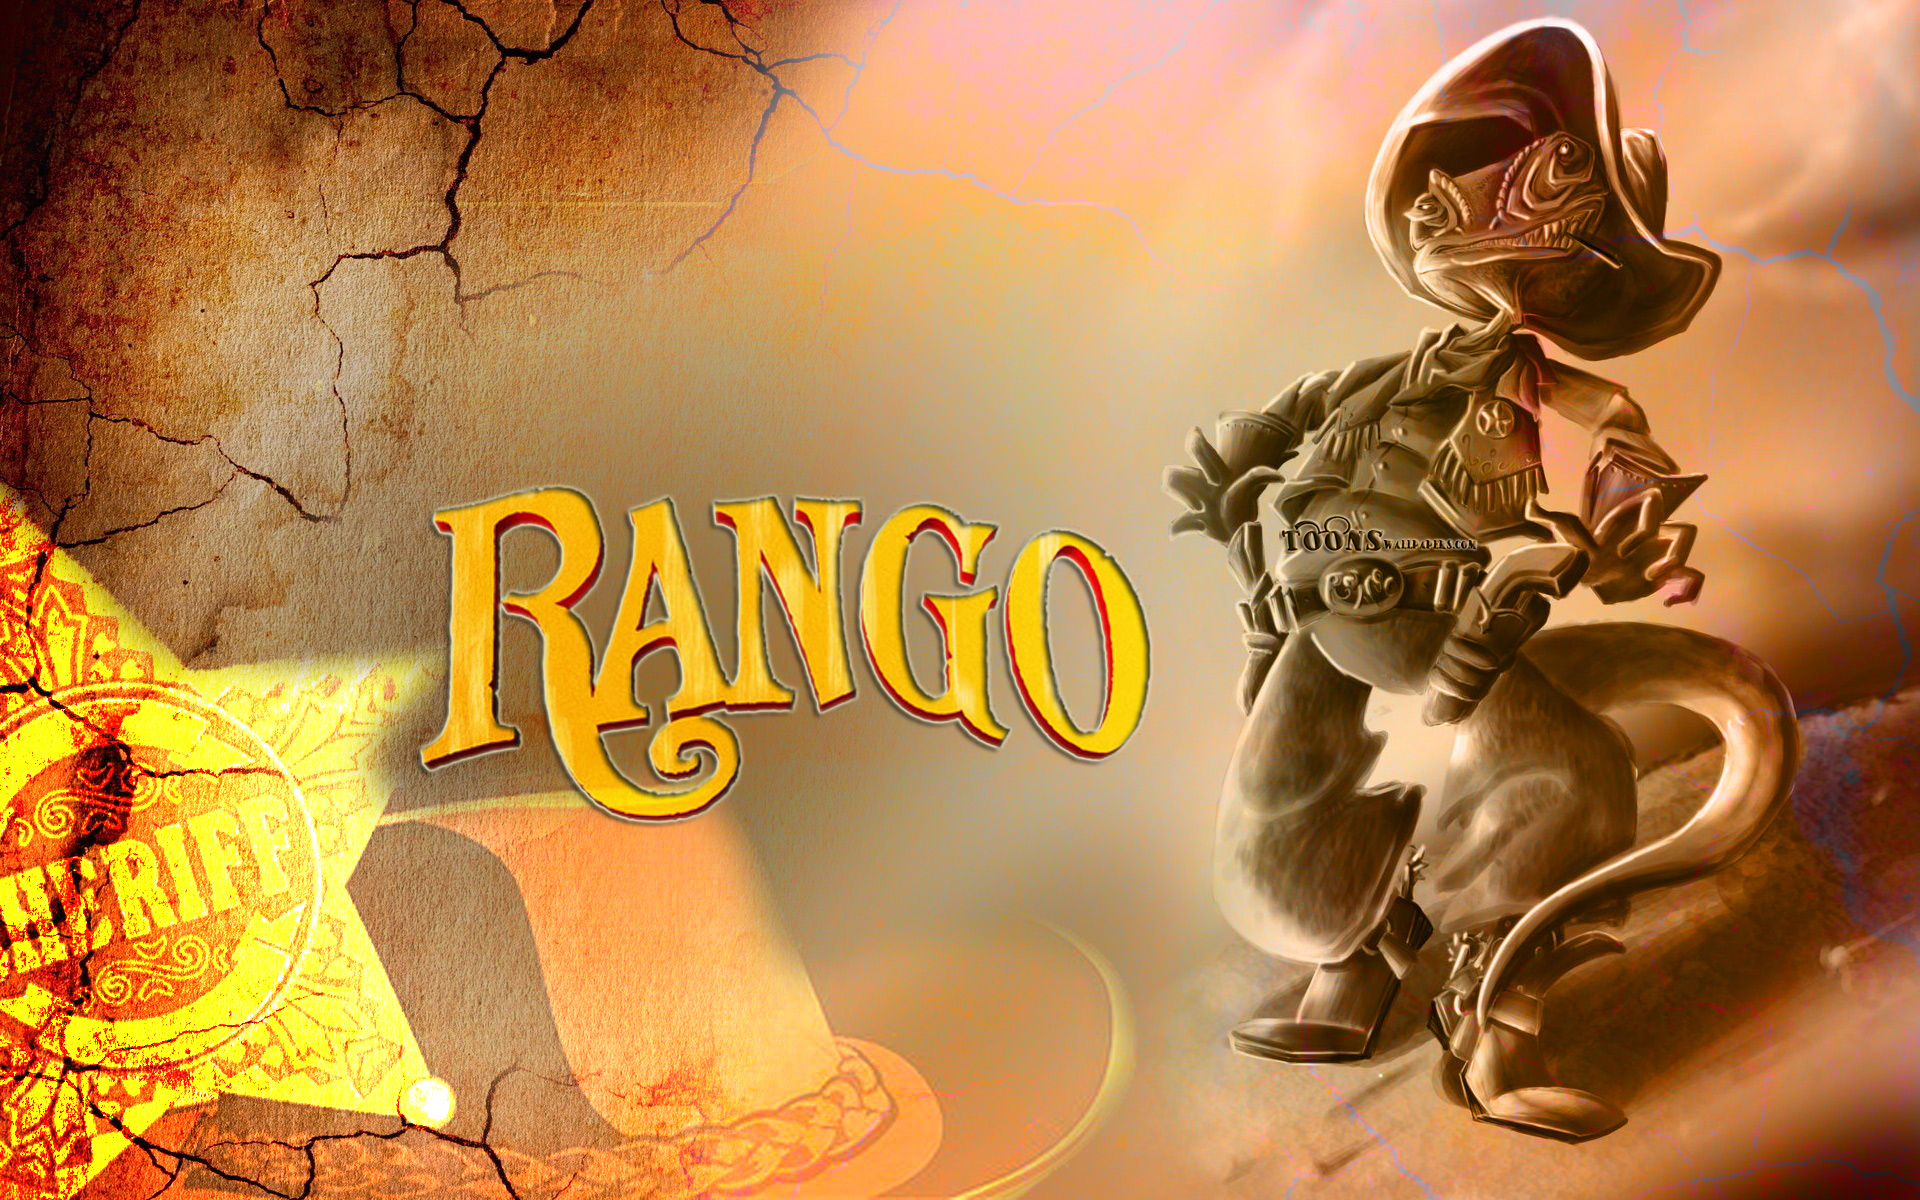 Animated Wallpapers For Pc Desktop Free Download Rango Hd Wallpapers All Hd Wallpapers